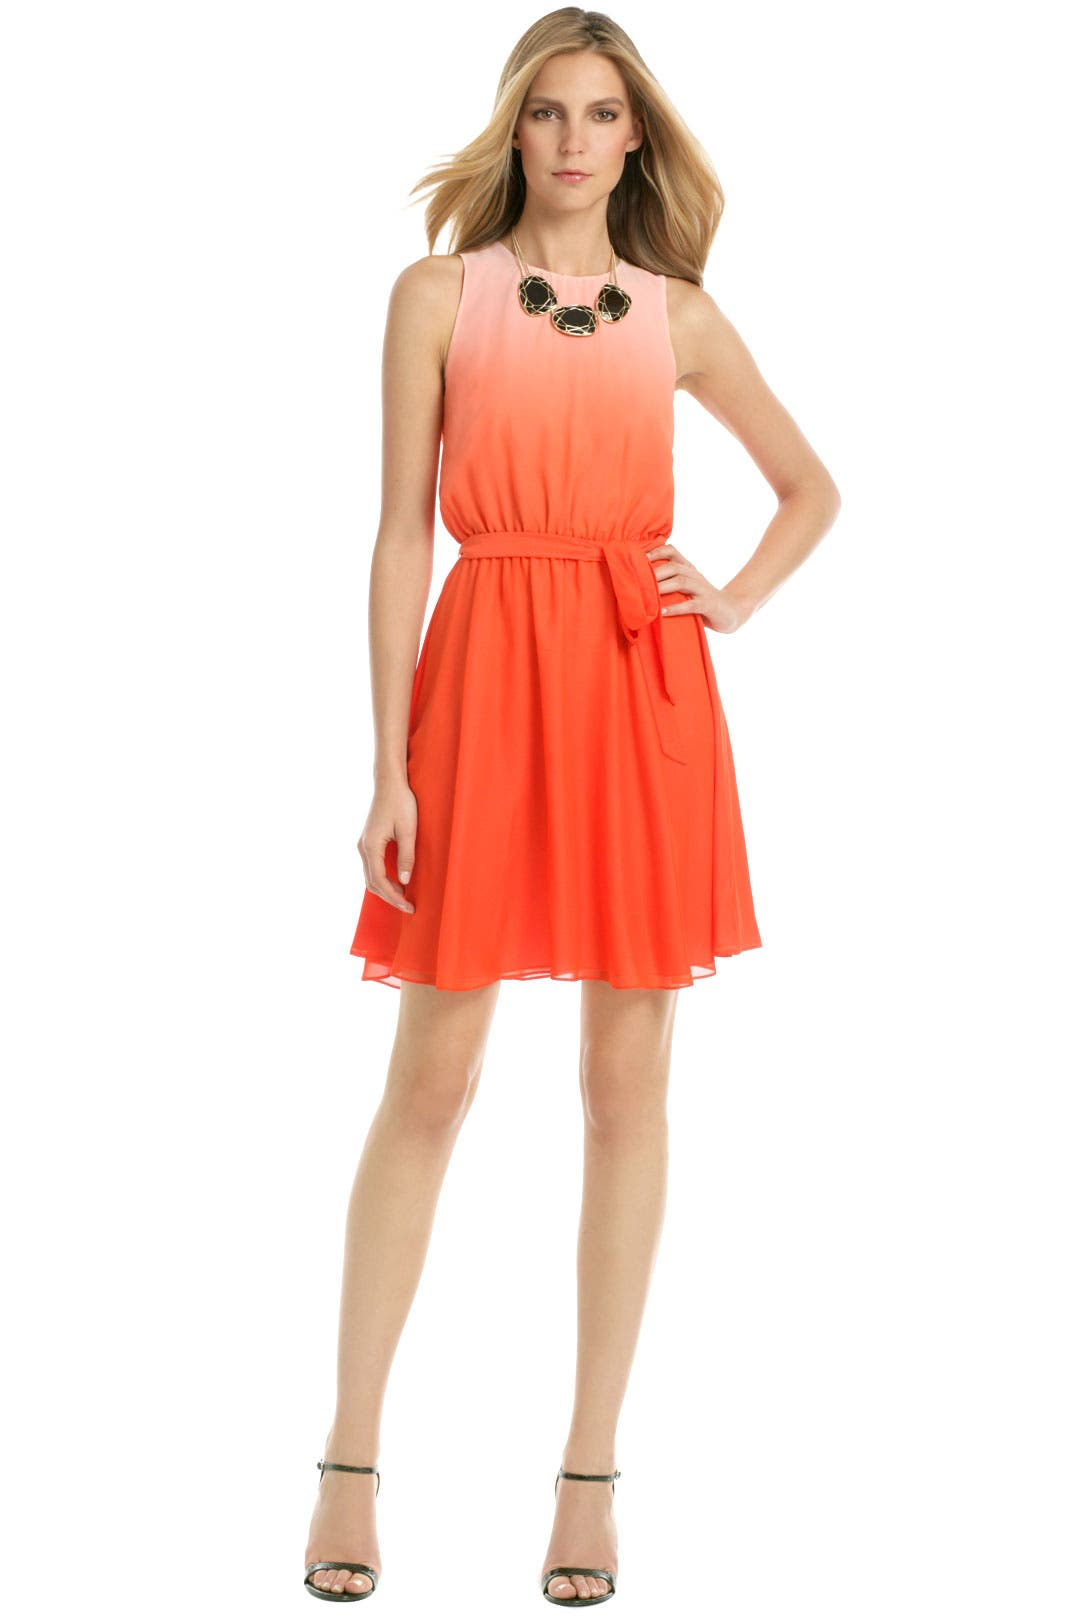 Malibu Orange Crush Dress by ERIN by erin fetherston